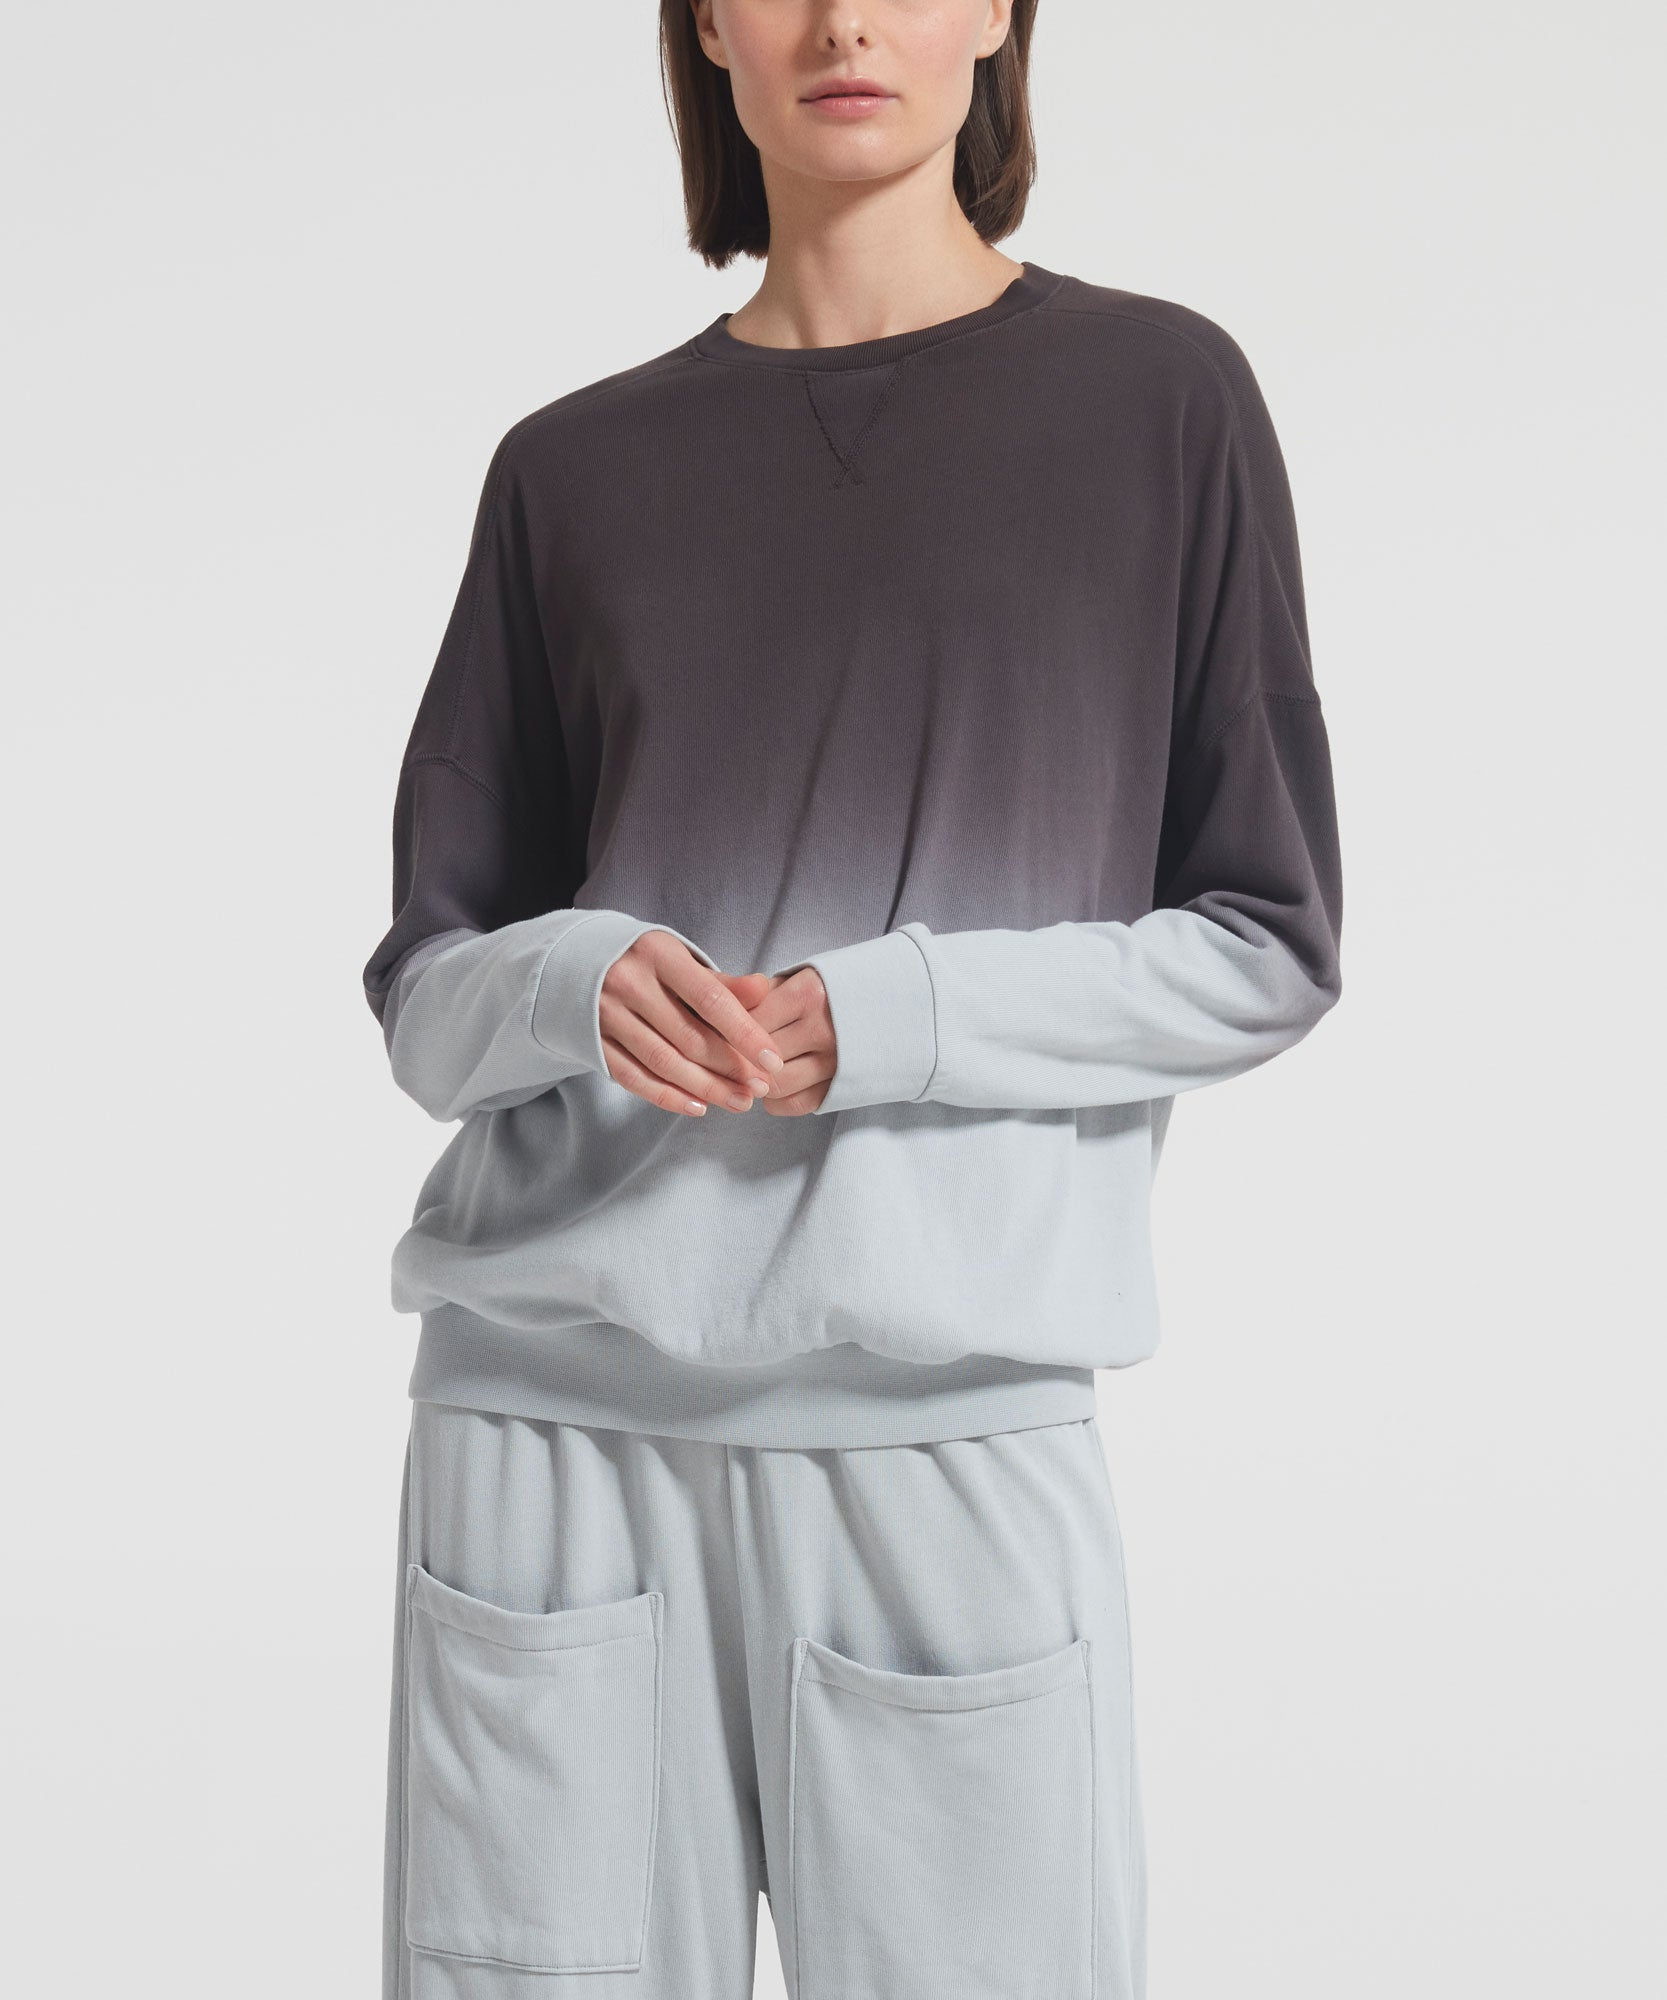 Dip Dye Sweatshirt - Women's Luxe Cotton Loungewear by ATM Anthony Thomas Melillo